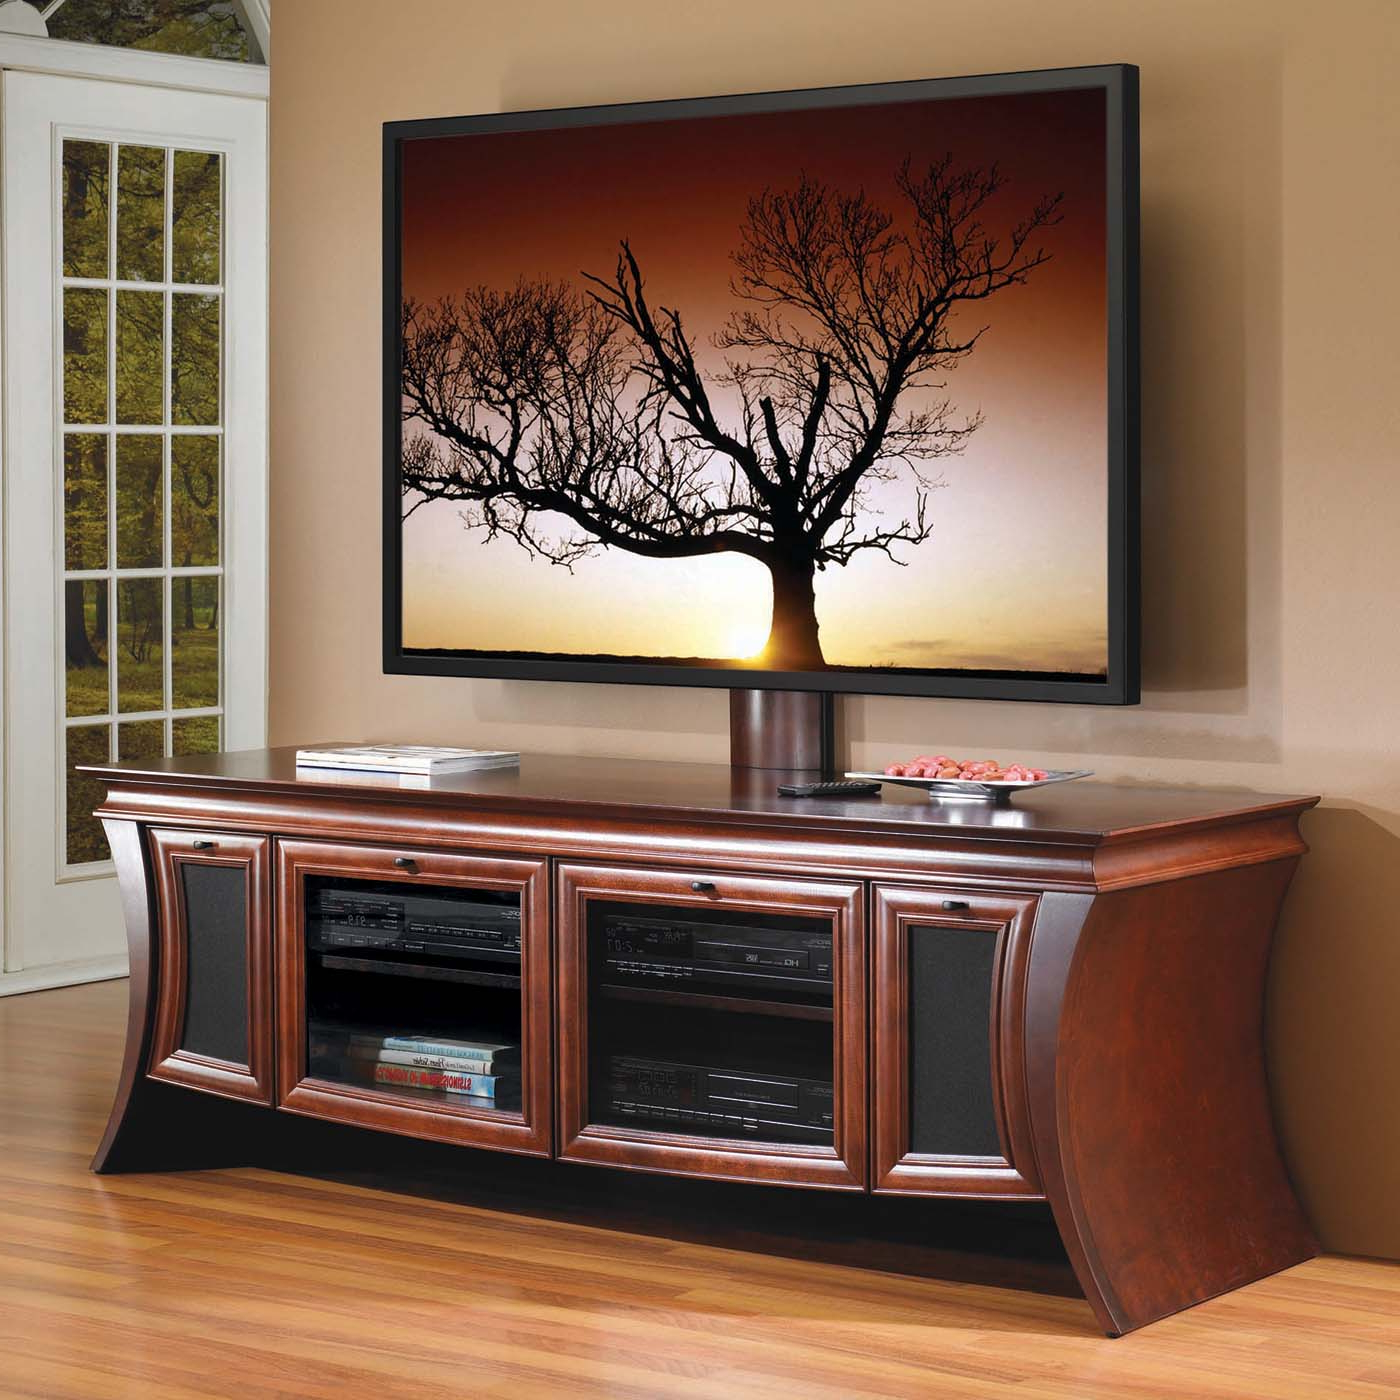 Amish Tv Stand Ohio Solid Wood Media Console Corner Entertainment In Current Corner Tv Cabinets For Flat Screens (Gallery 11 of 20)